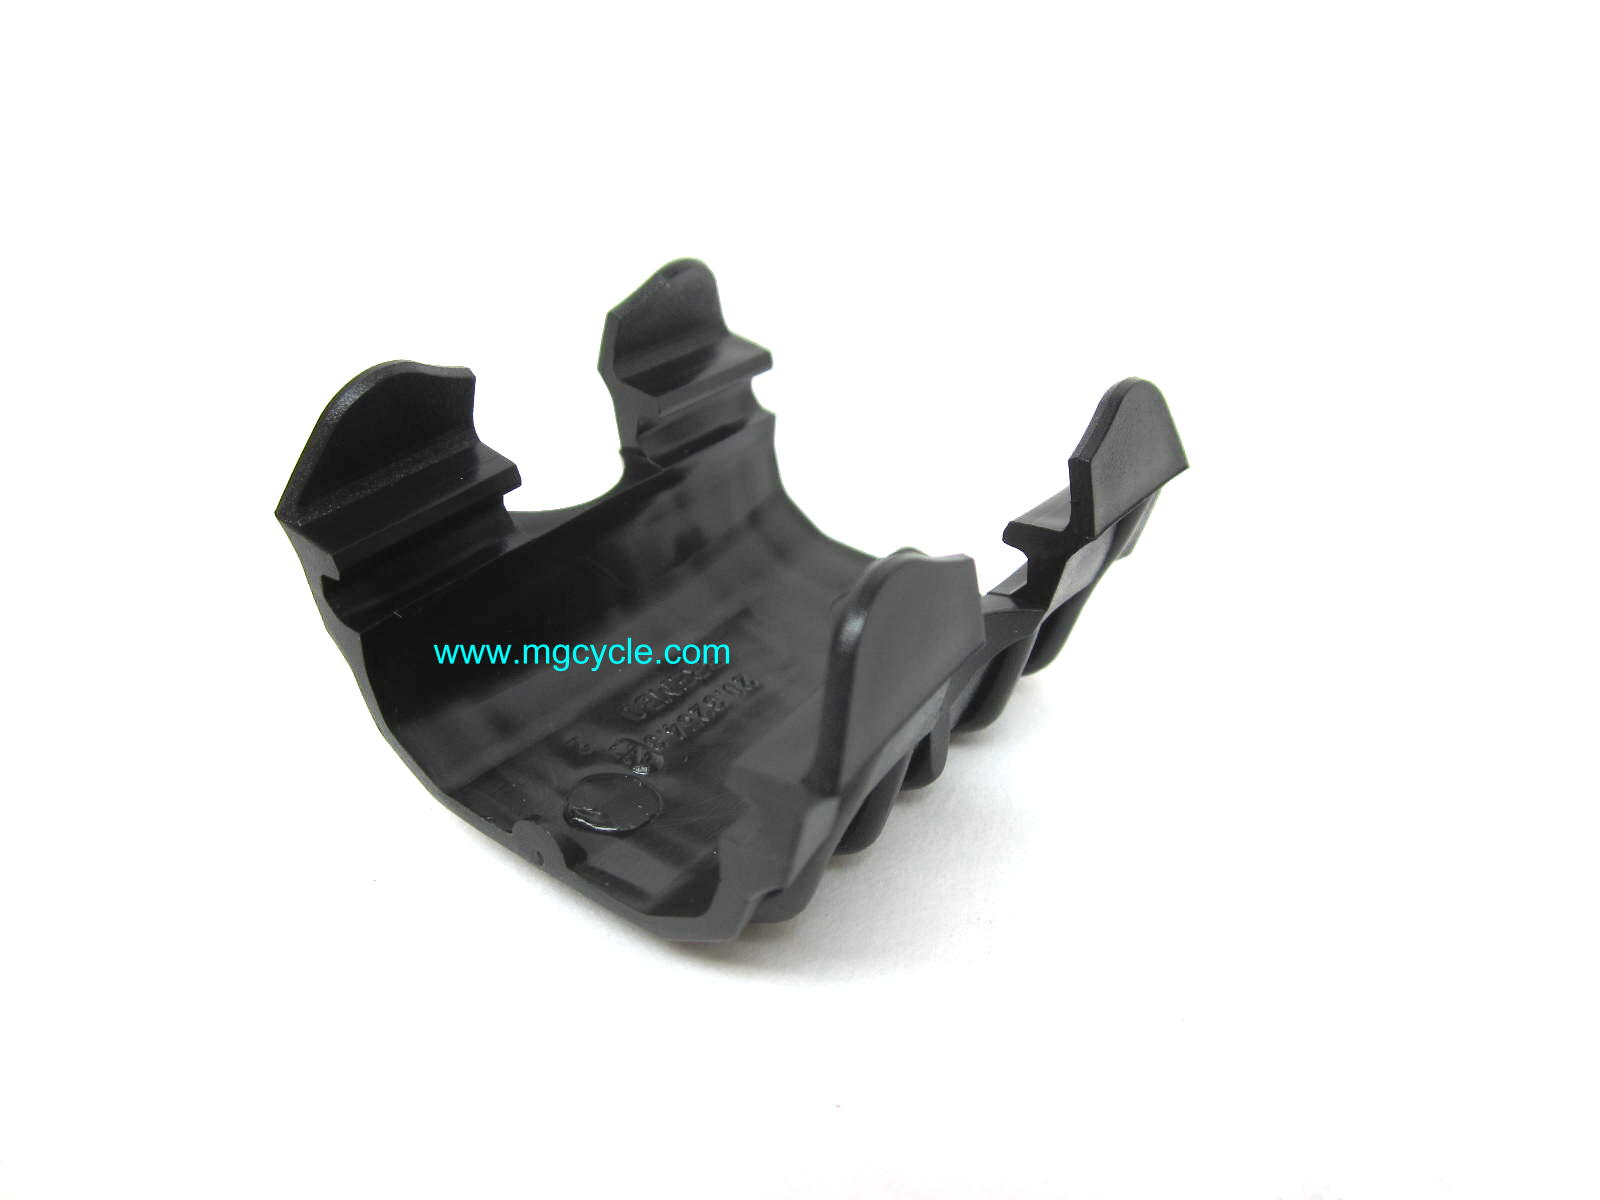 Brembo caliper cover for P2 F08 calipers with 2 nipples